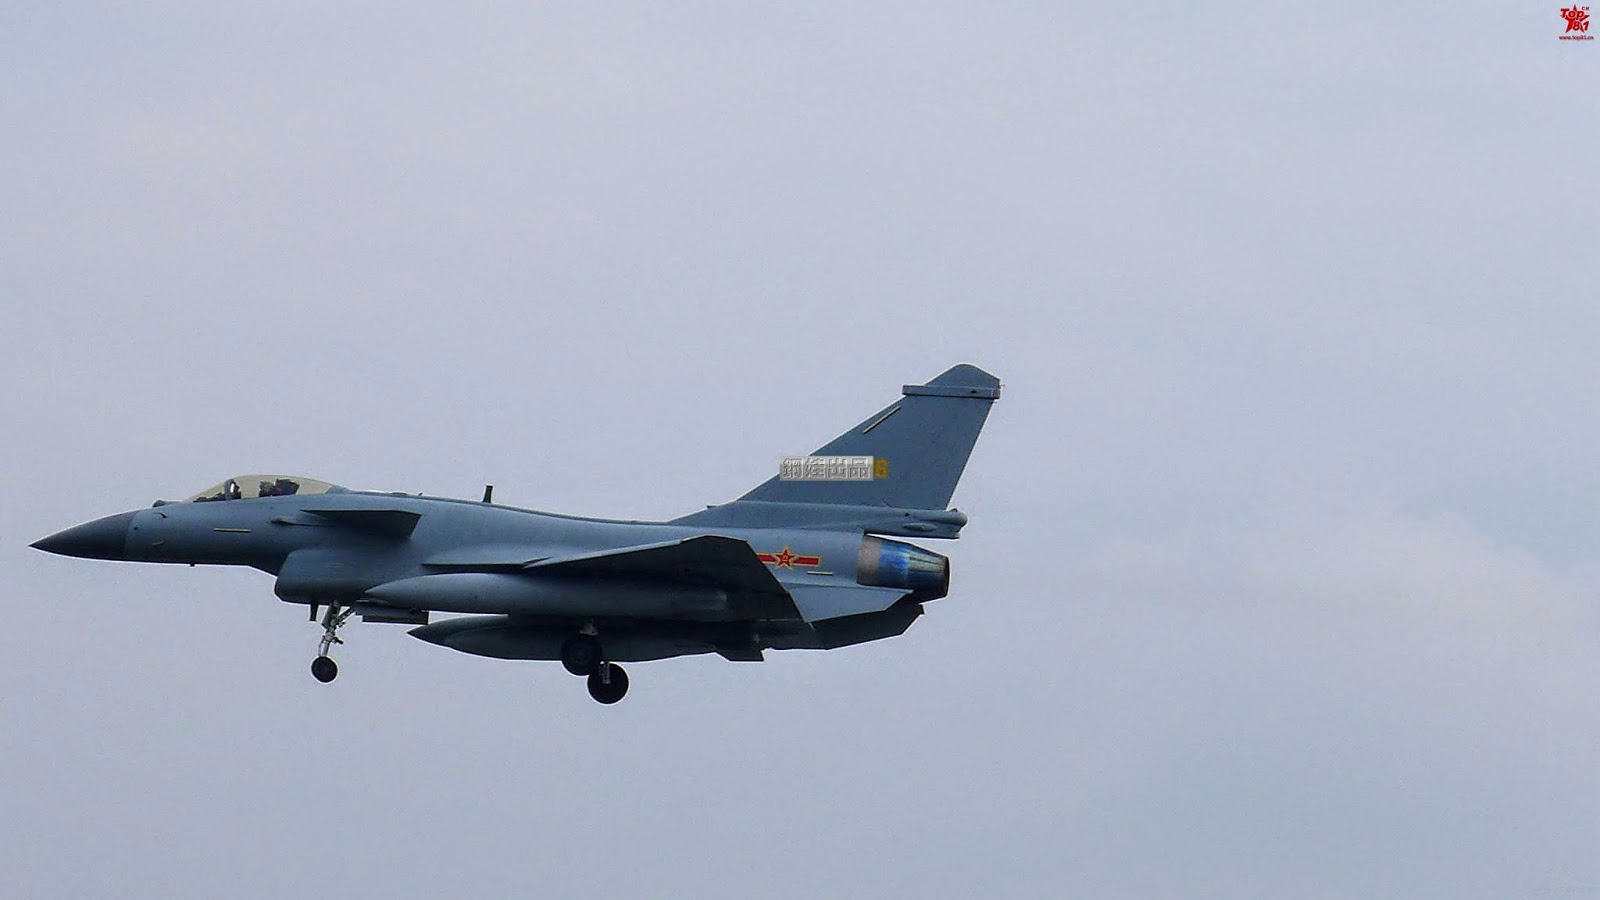 PLAAF's J-10B (Jian-10B) MultiRole Fighter Jet | Chinese ...